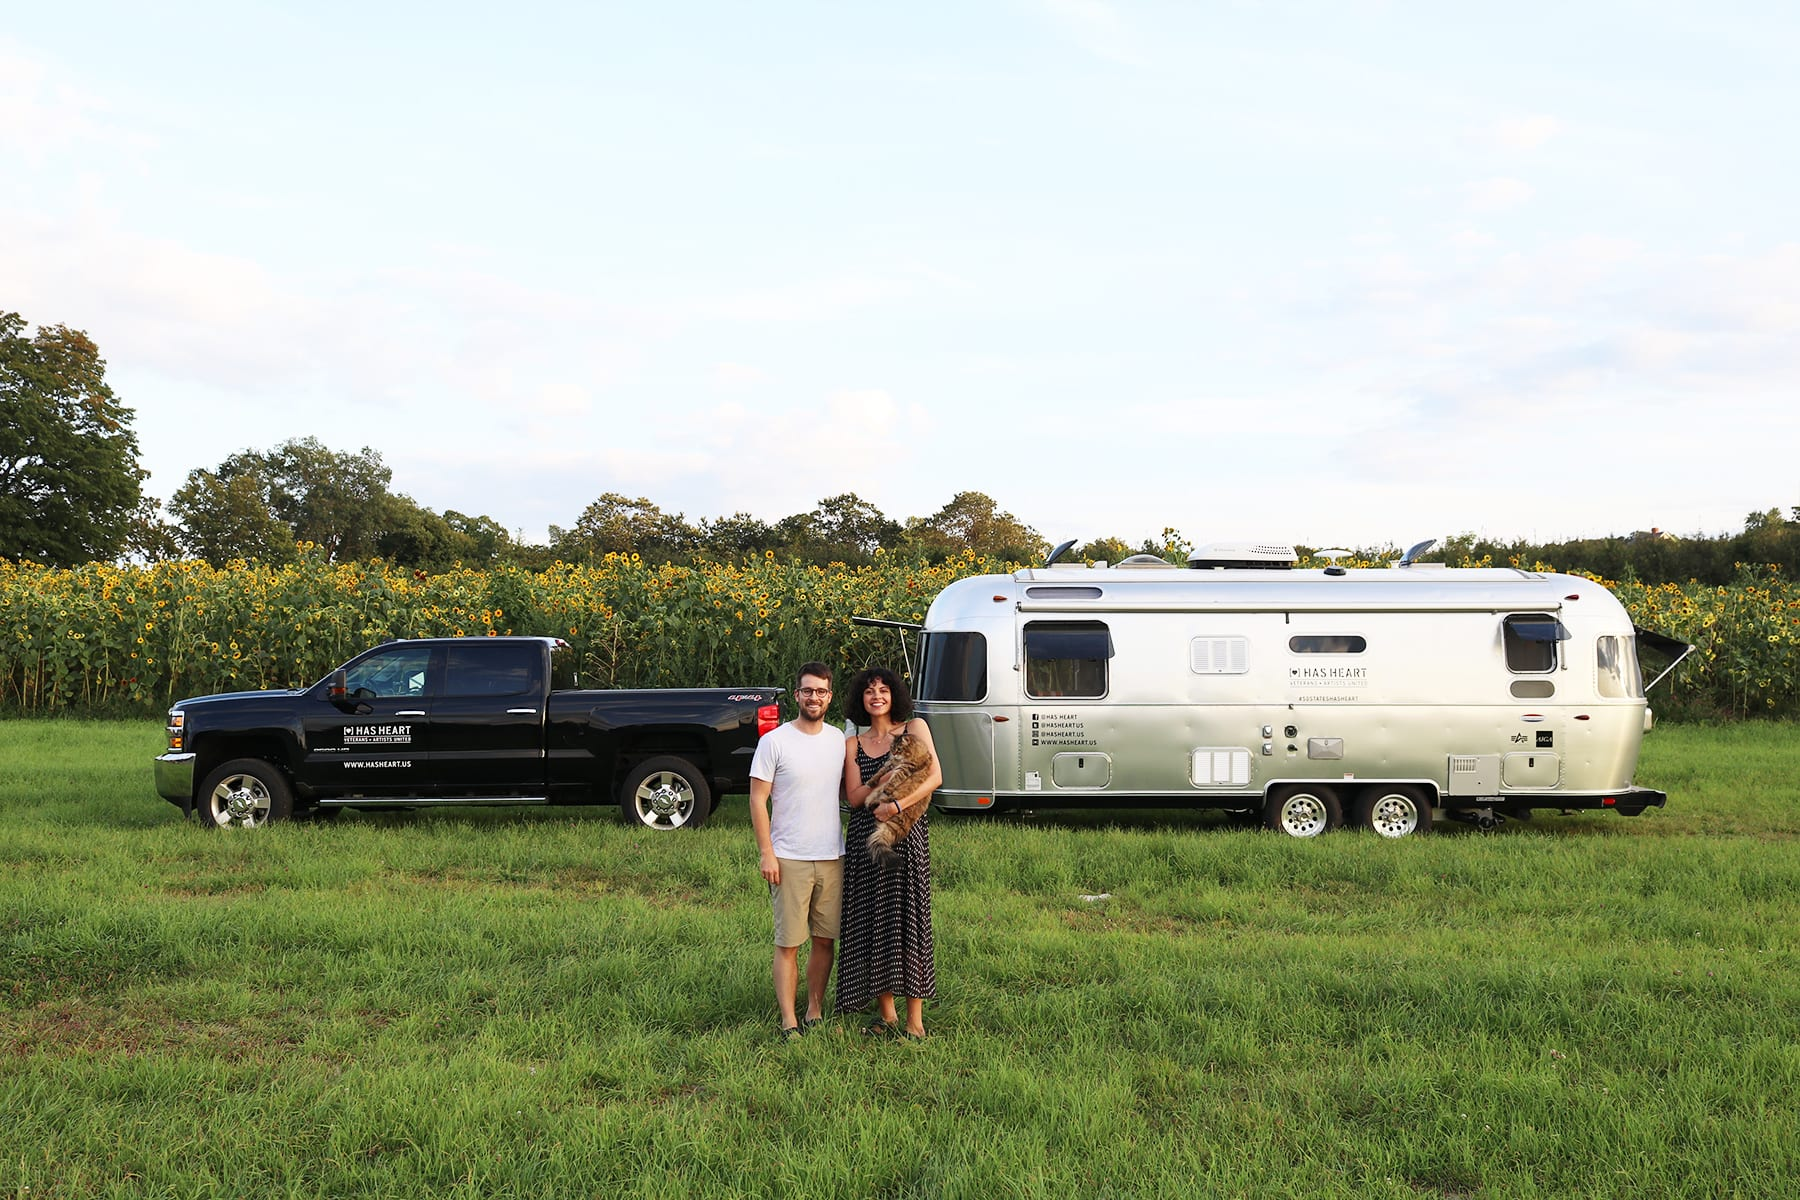 07-CT-journey-airstream-sunflowerfield02.jpg